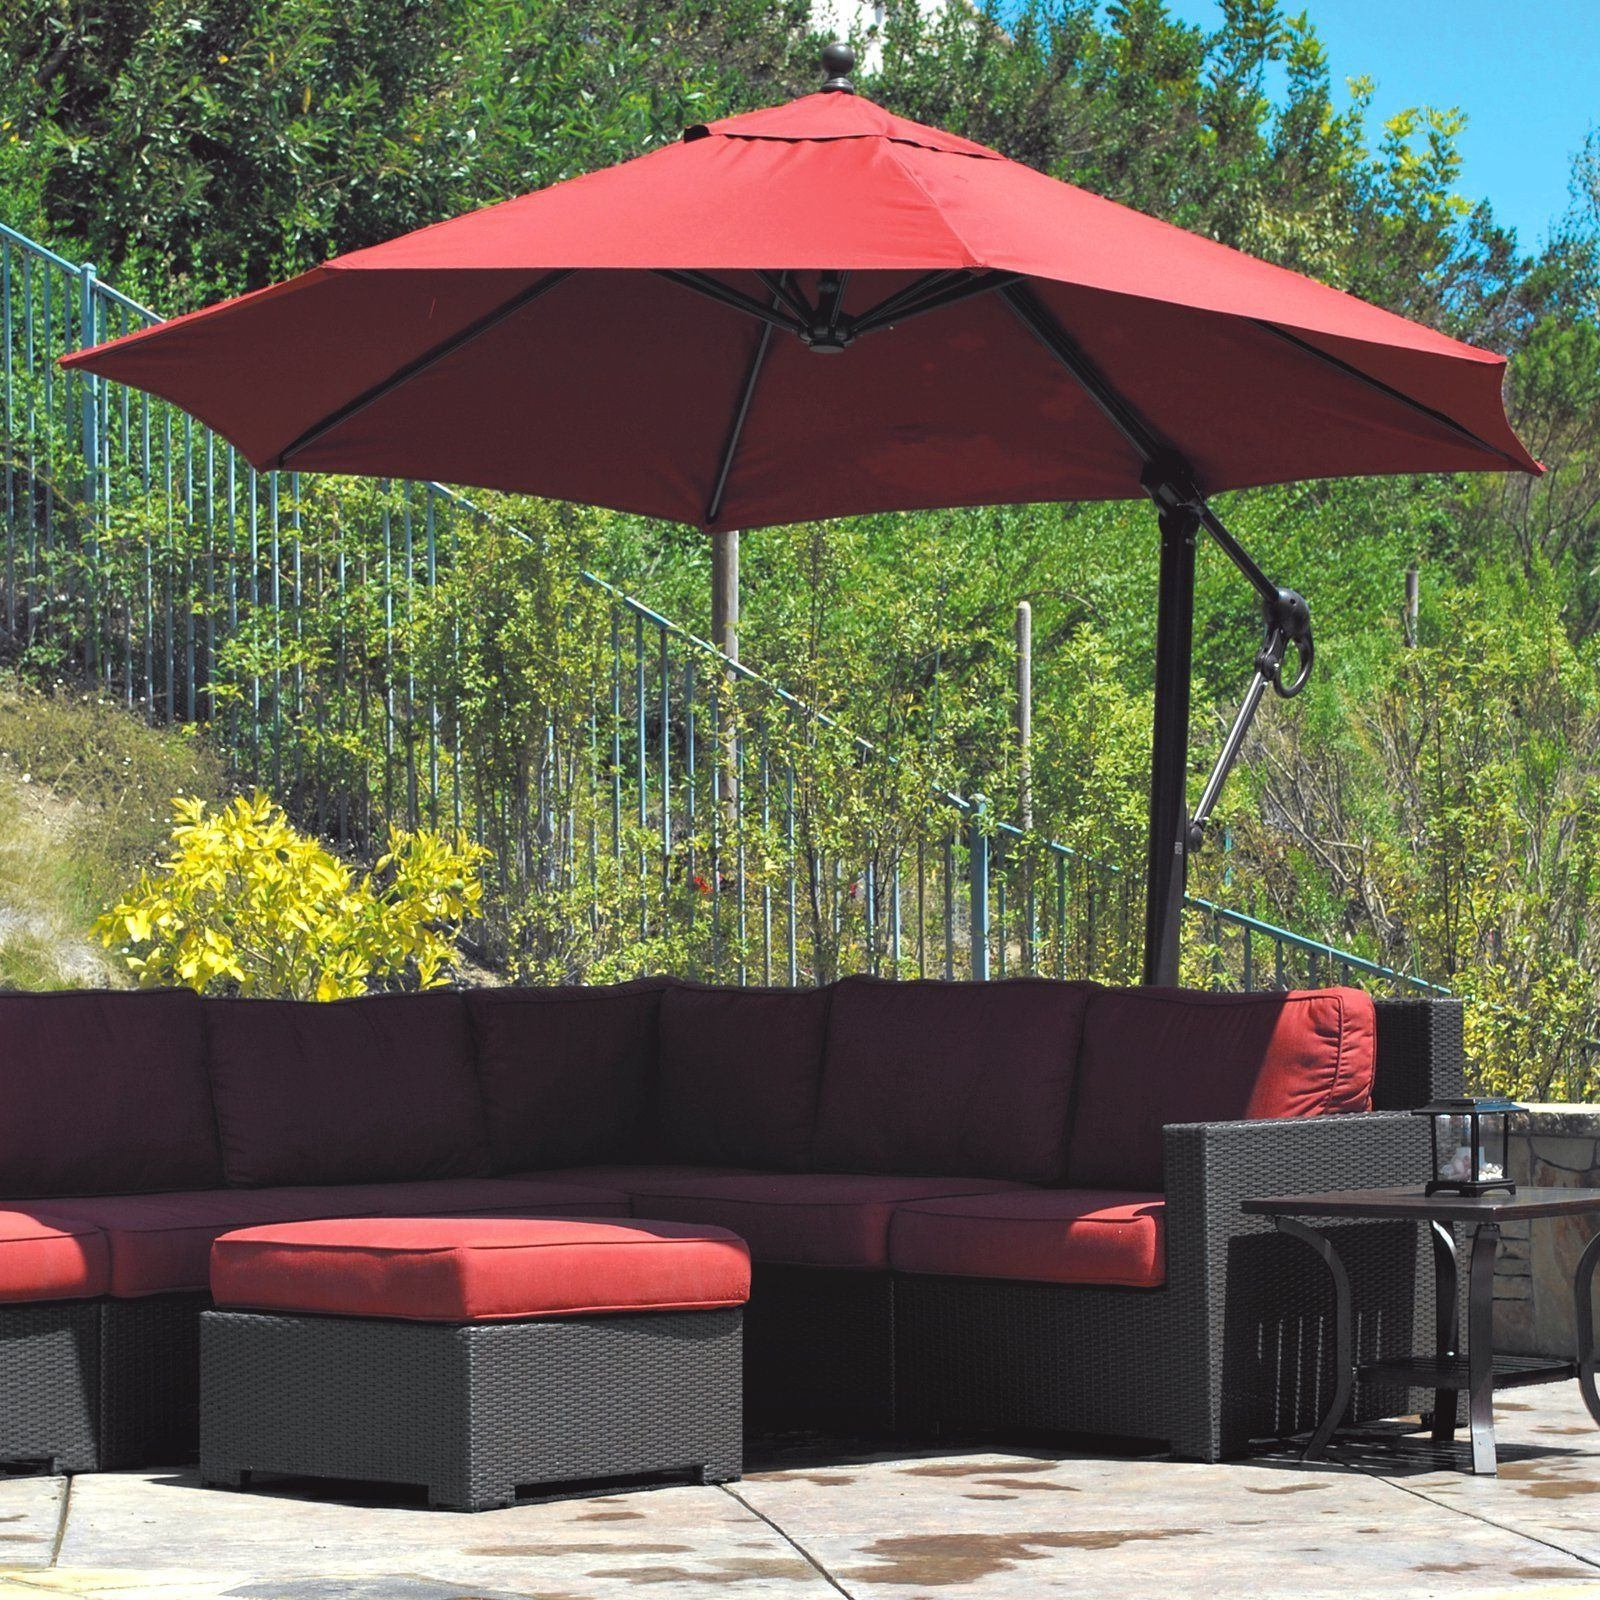 Widely Used Lowes Cantilever Patio Umbrellas Throughout Lowes Patio Umbrellas – Incredible Patio Umbrella Sale Elegant Cool (View 17 of 20)